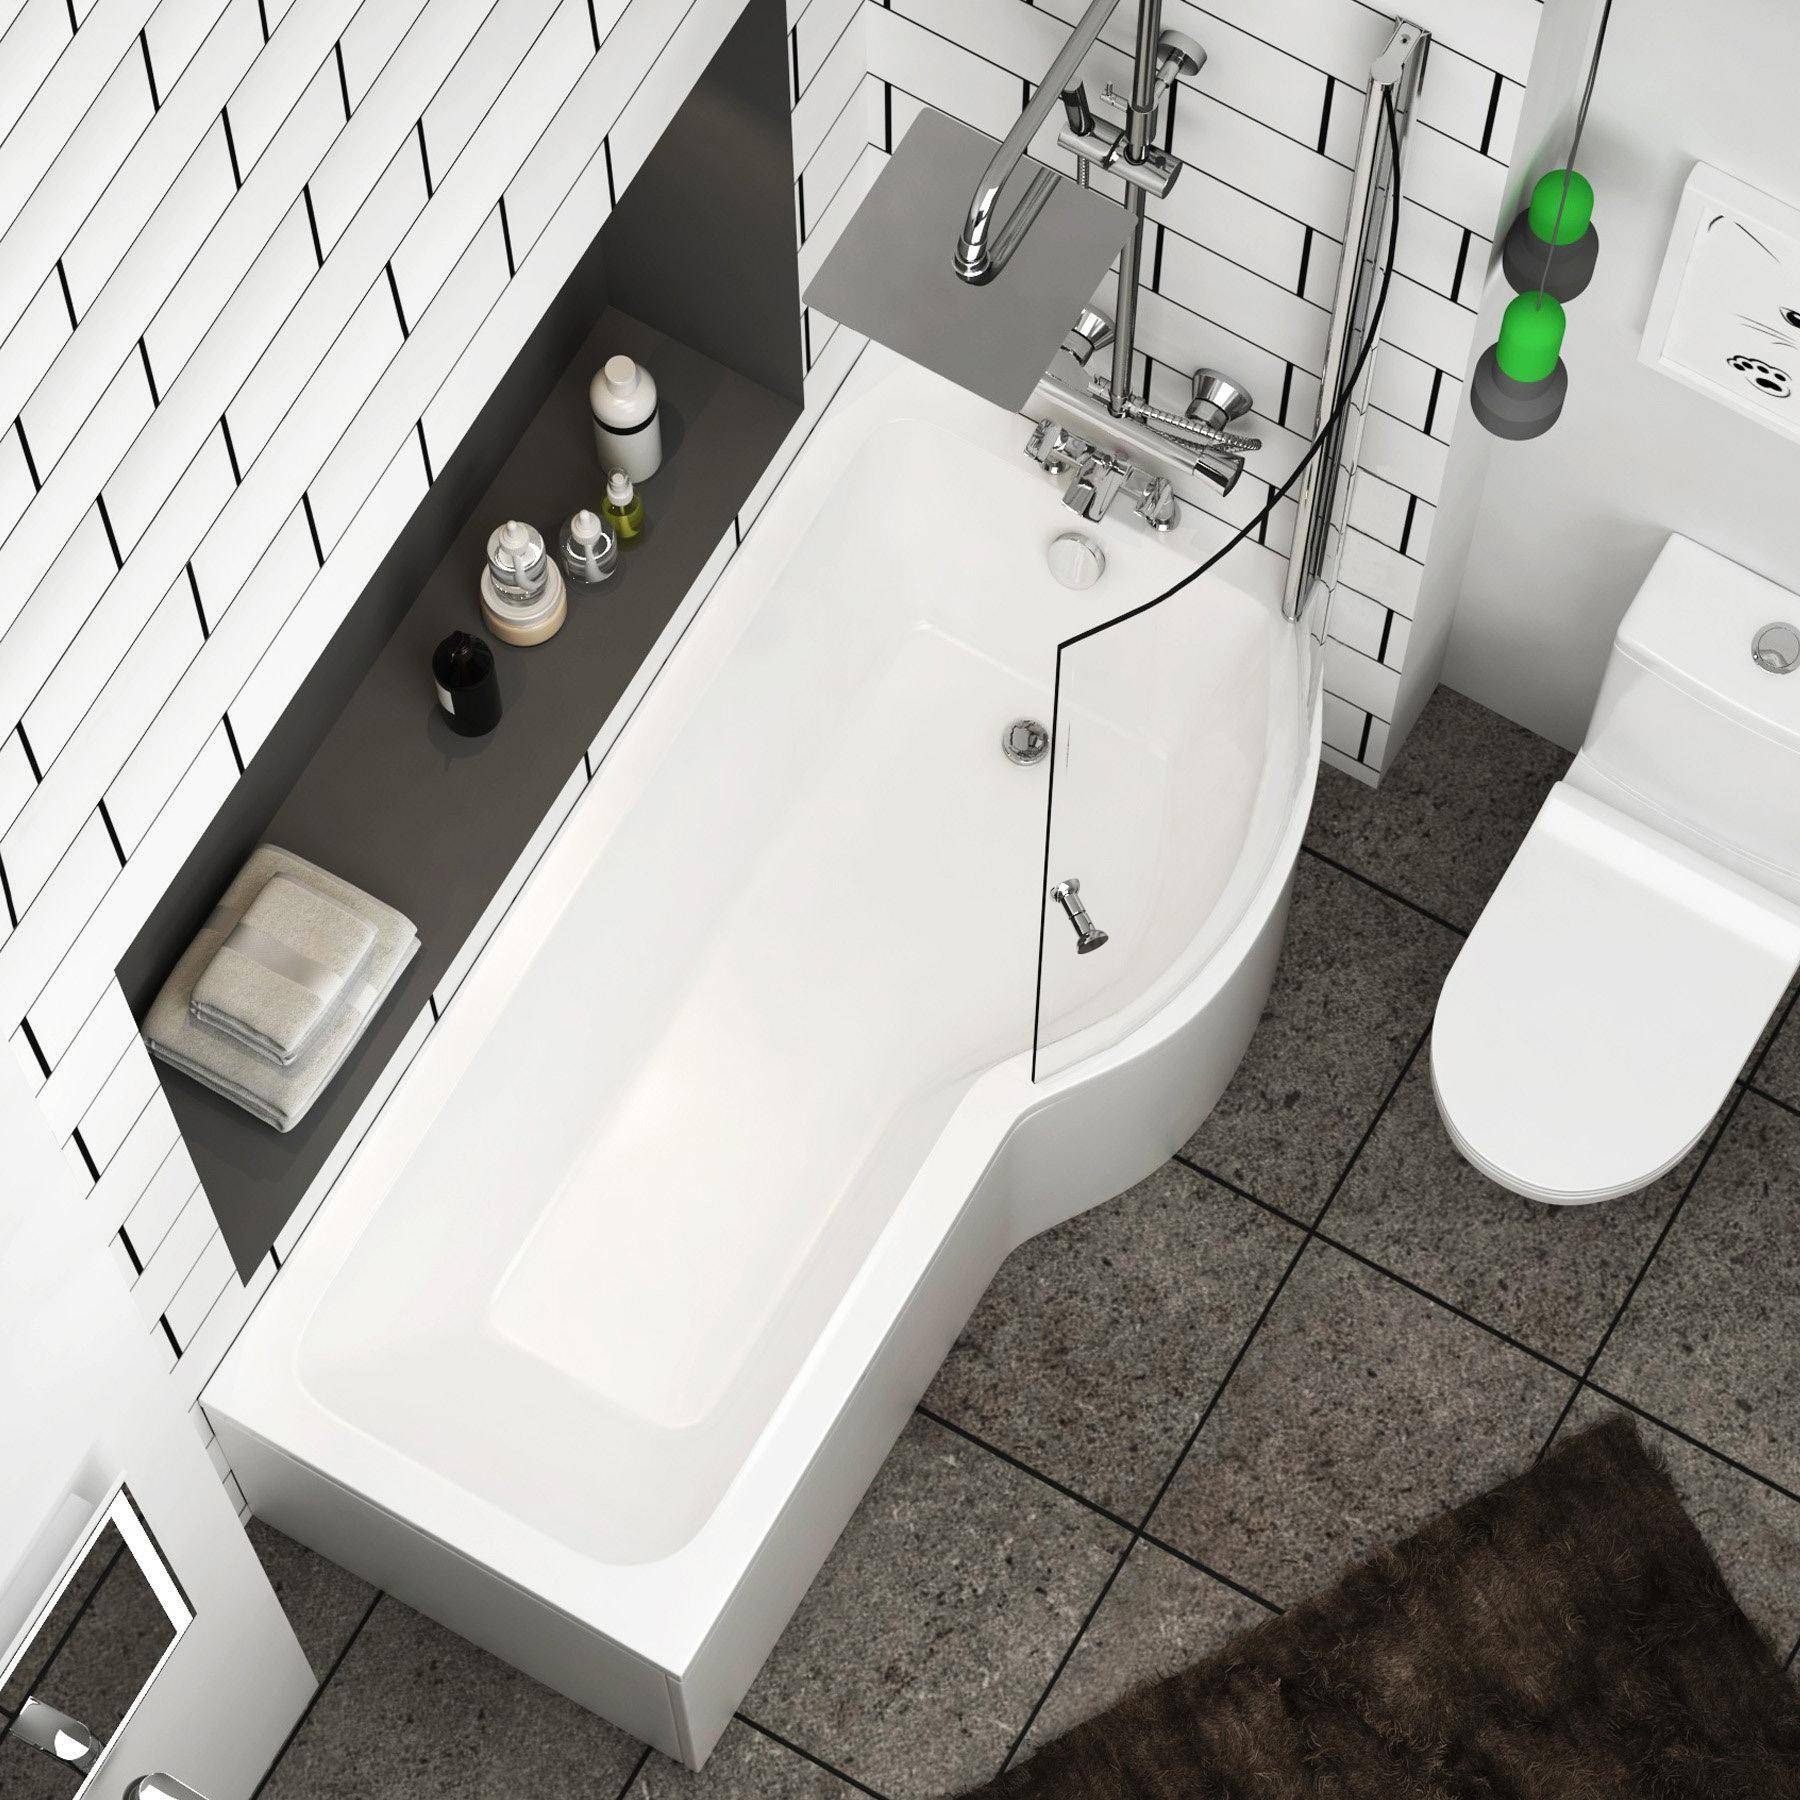 Royal Bathrooms Abacus 1700 x 850mm Right Hand Curved P-Shaped Bath tub with Front, End Panel & Shower Screen